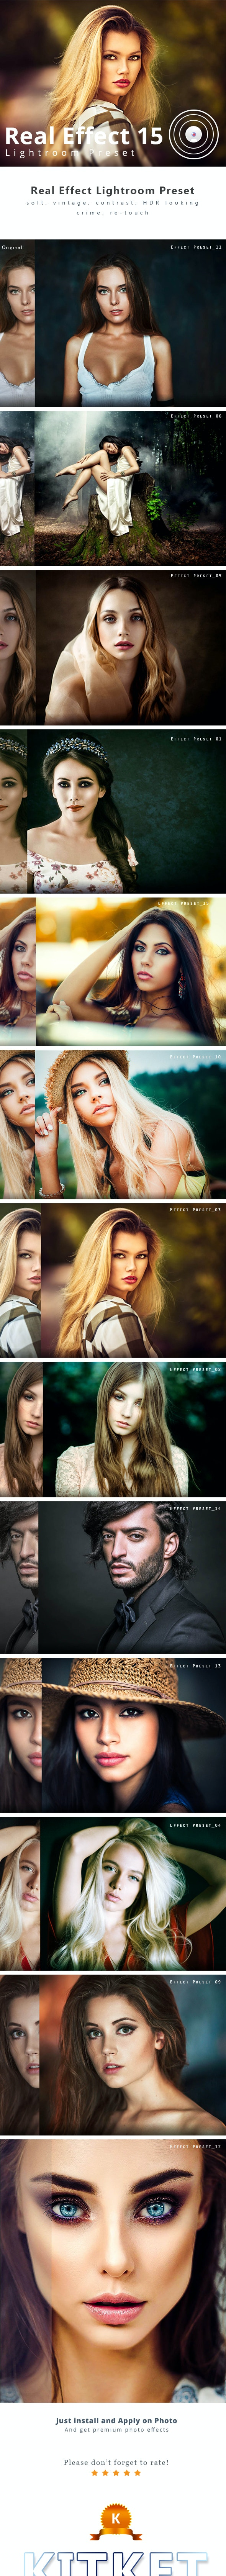 Real Effect 15 Photography Lightroom Preset - Portrait Lightroom Presets